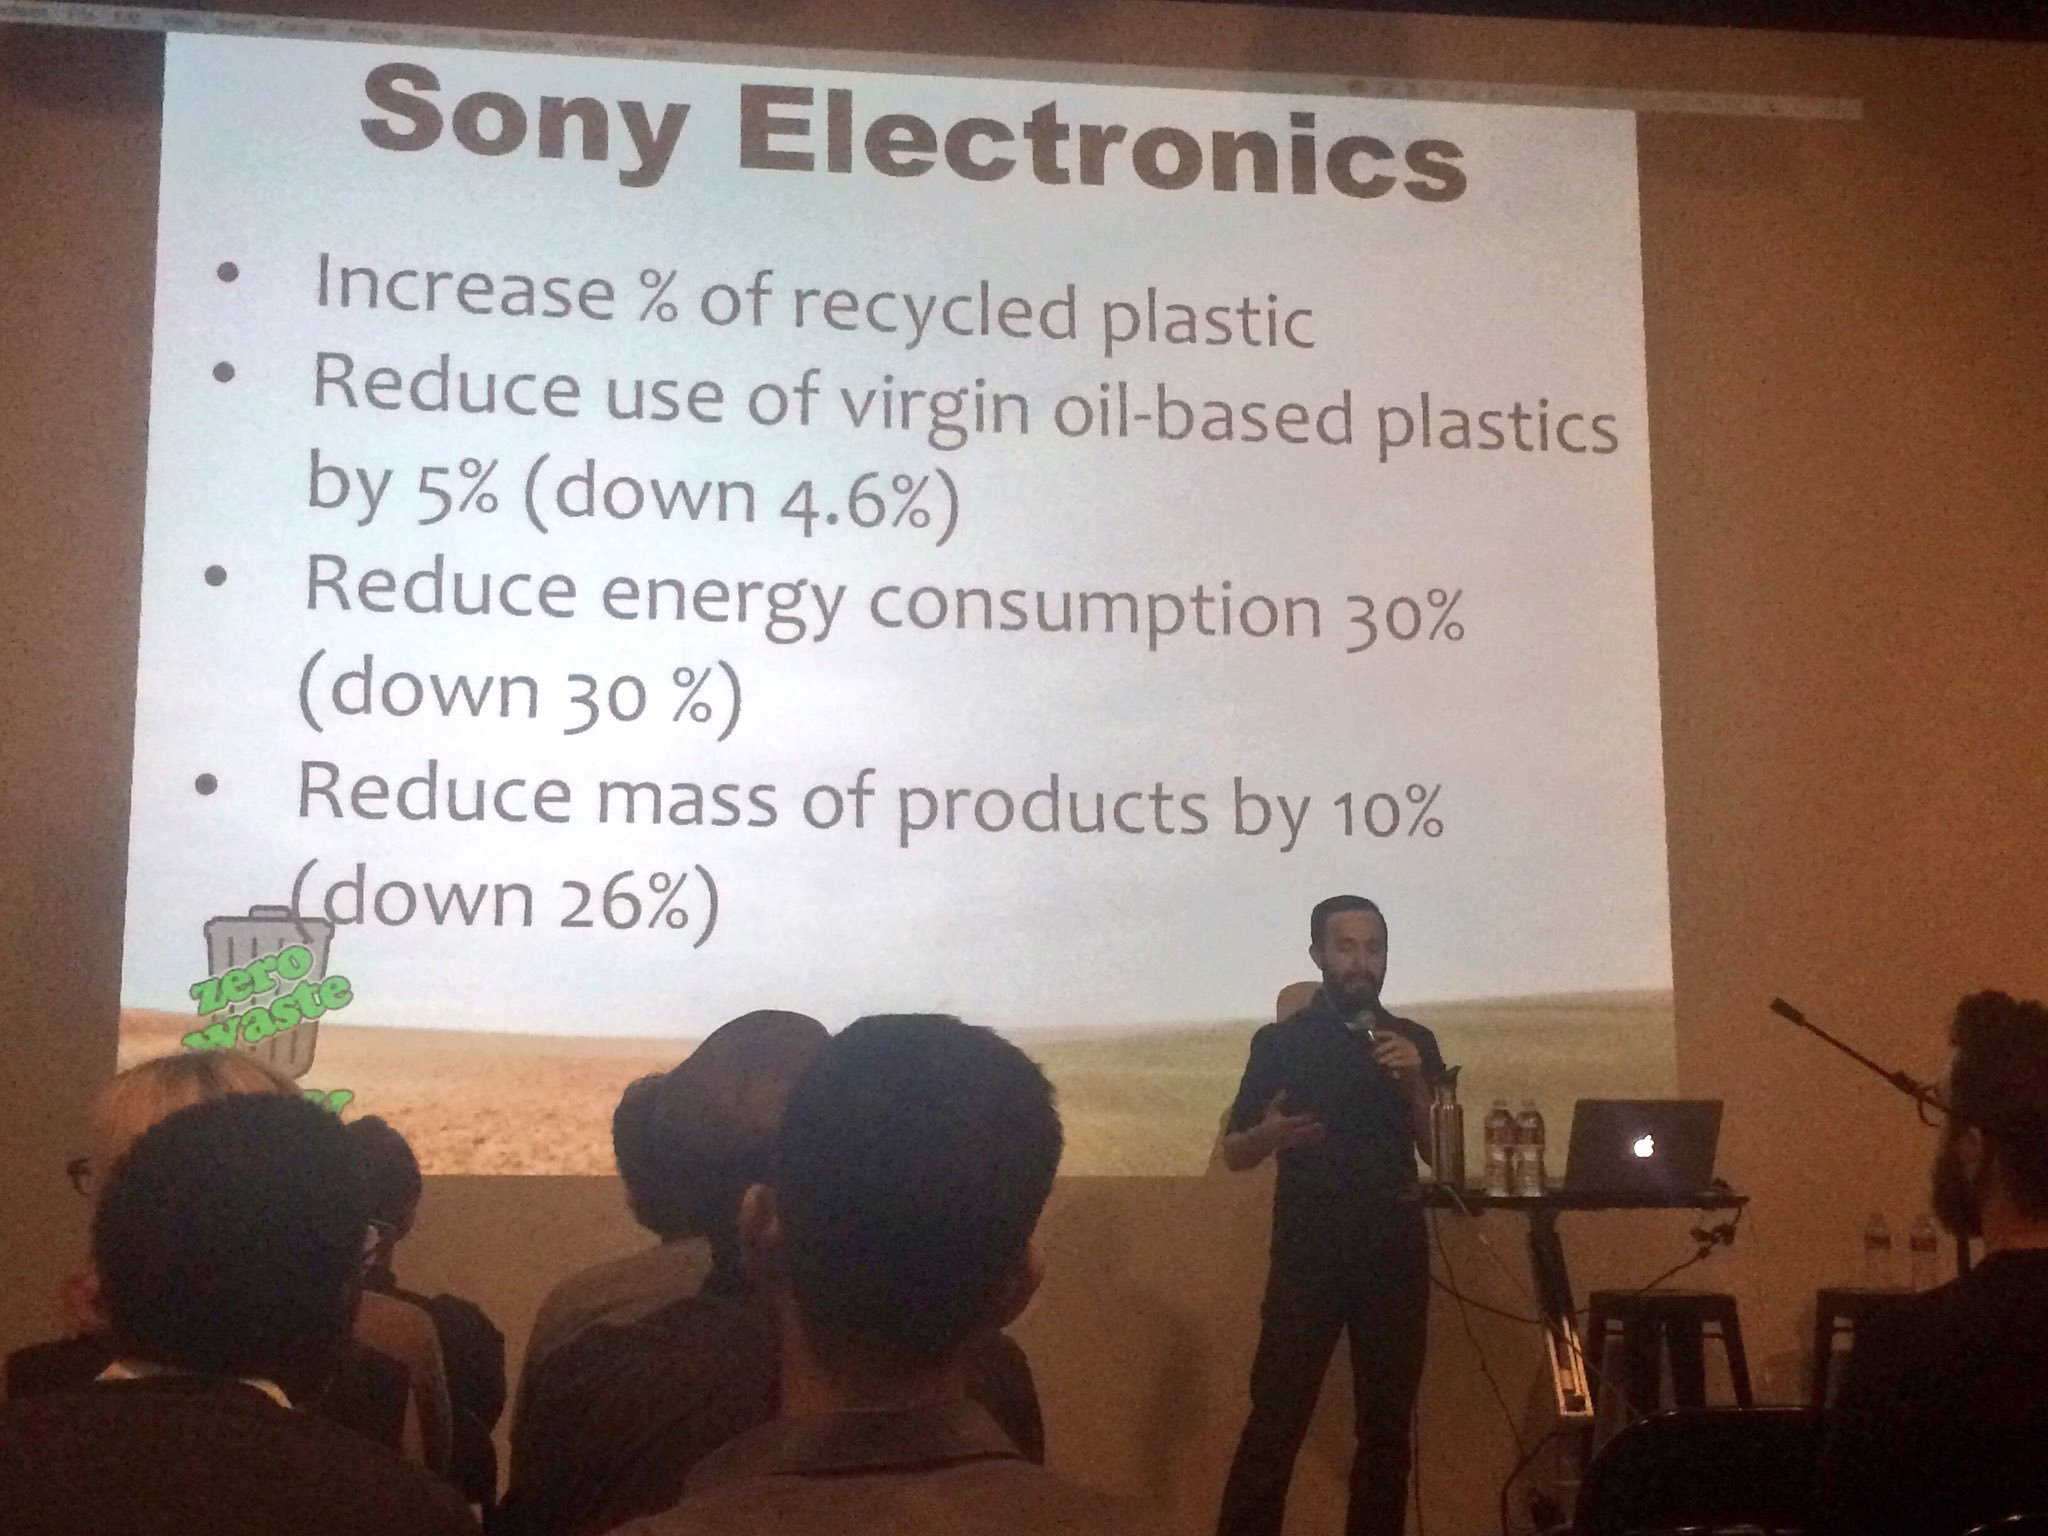 Sustainability is becoming more of a focus for companies. @Sony is one great example. https://t.co/Iodei7dsnM @zerowasteguy1 #wud16la https://t.co/gwTQyPwcrI